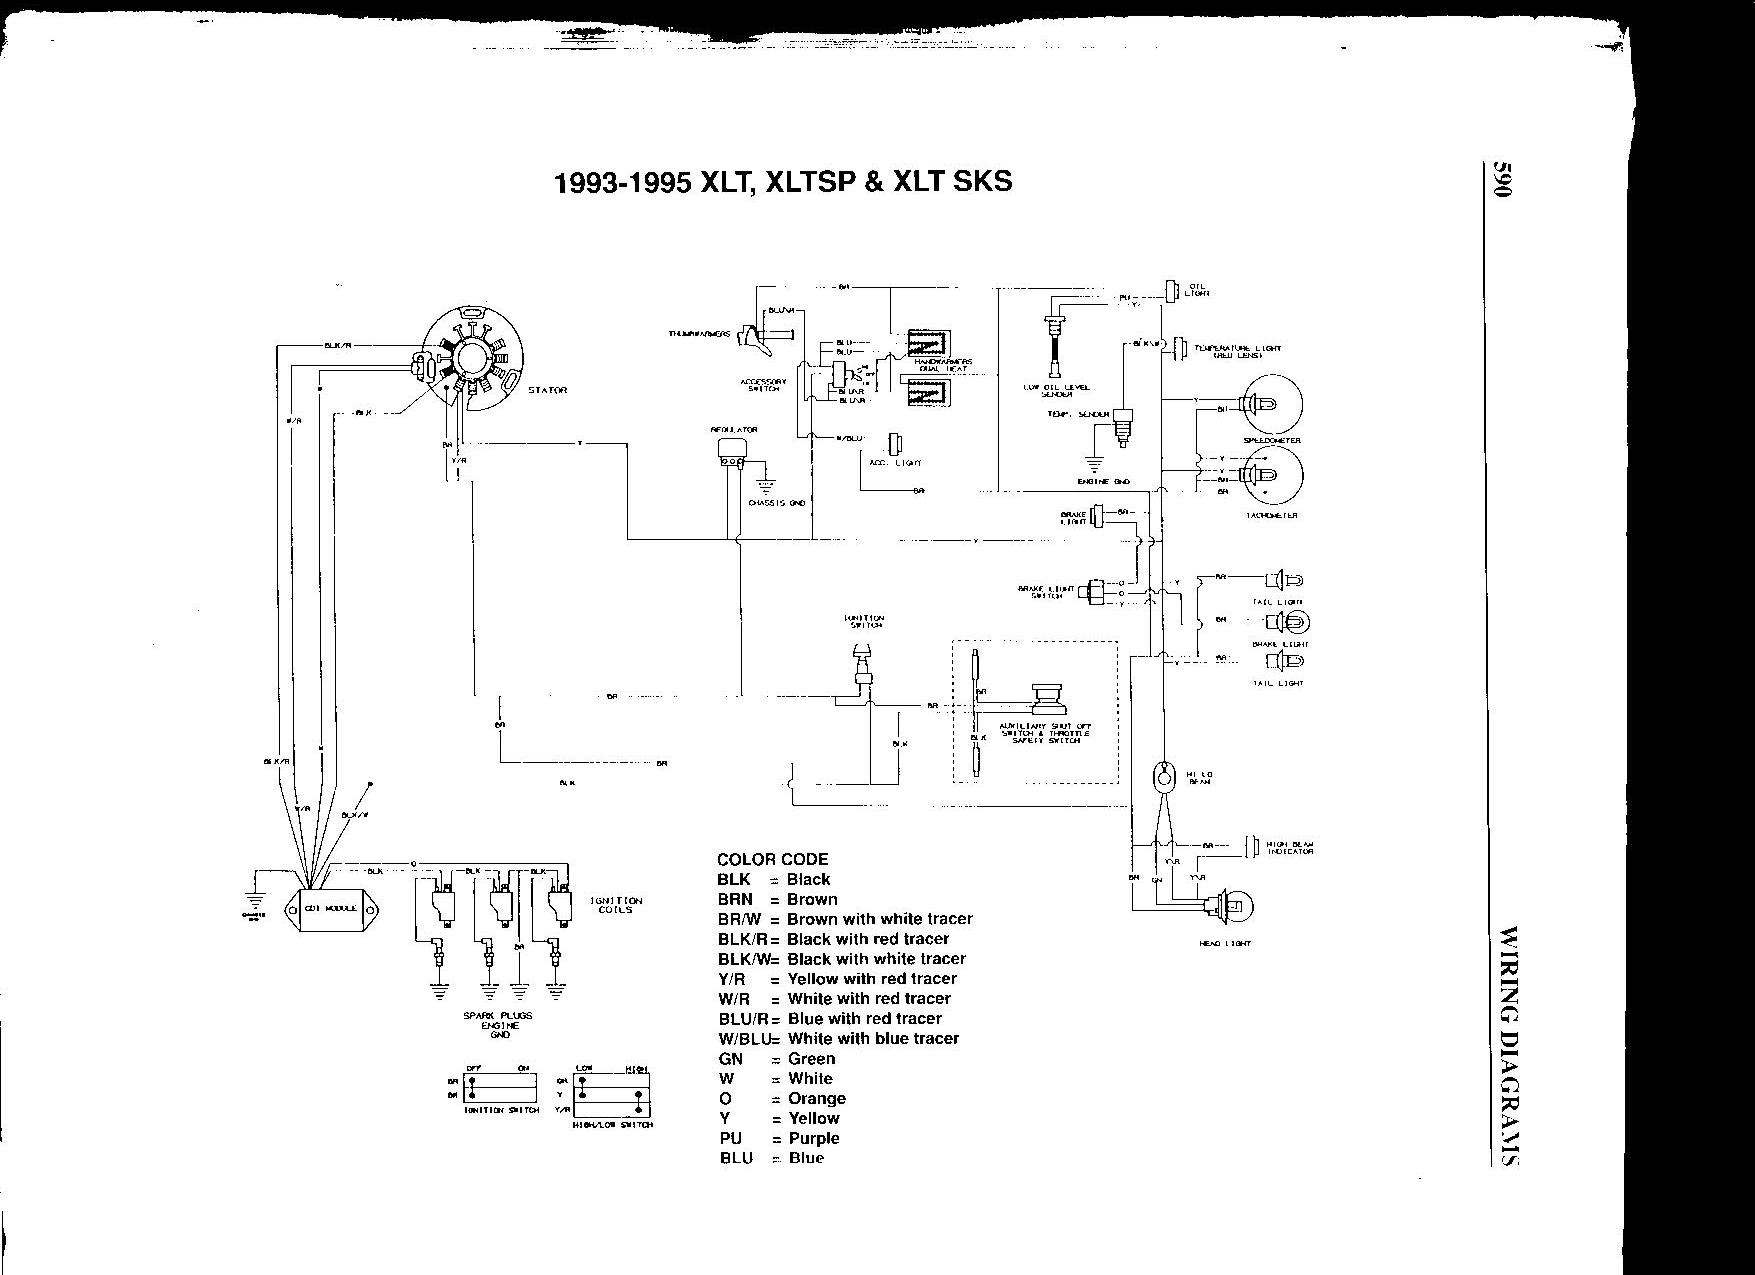 Polaris Xlt Wiring Diagram And Schematics 05 Atv Get Free Image About Source Attachment 172191